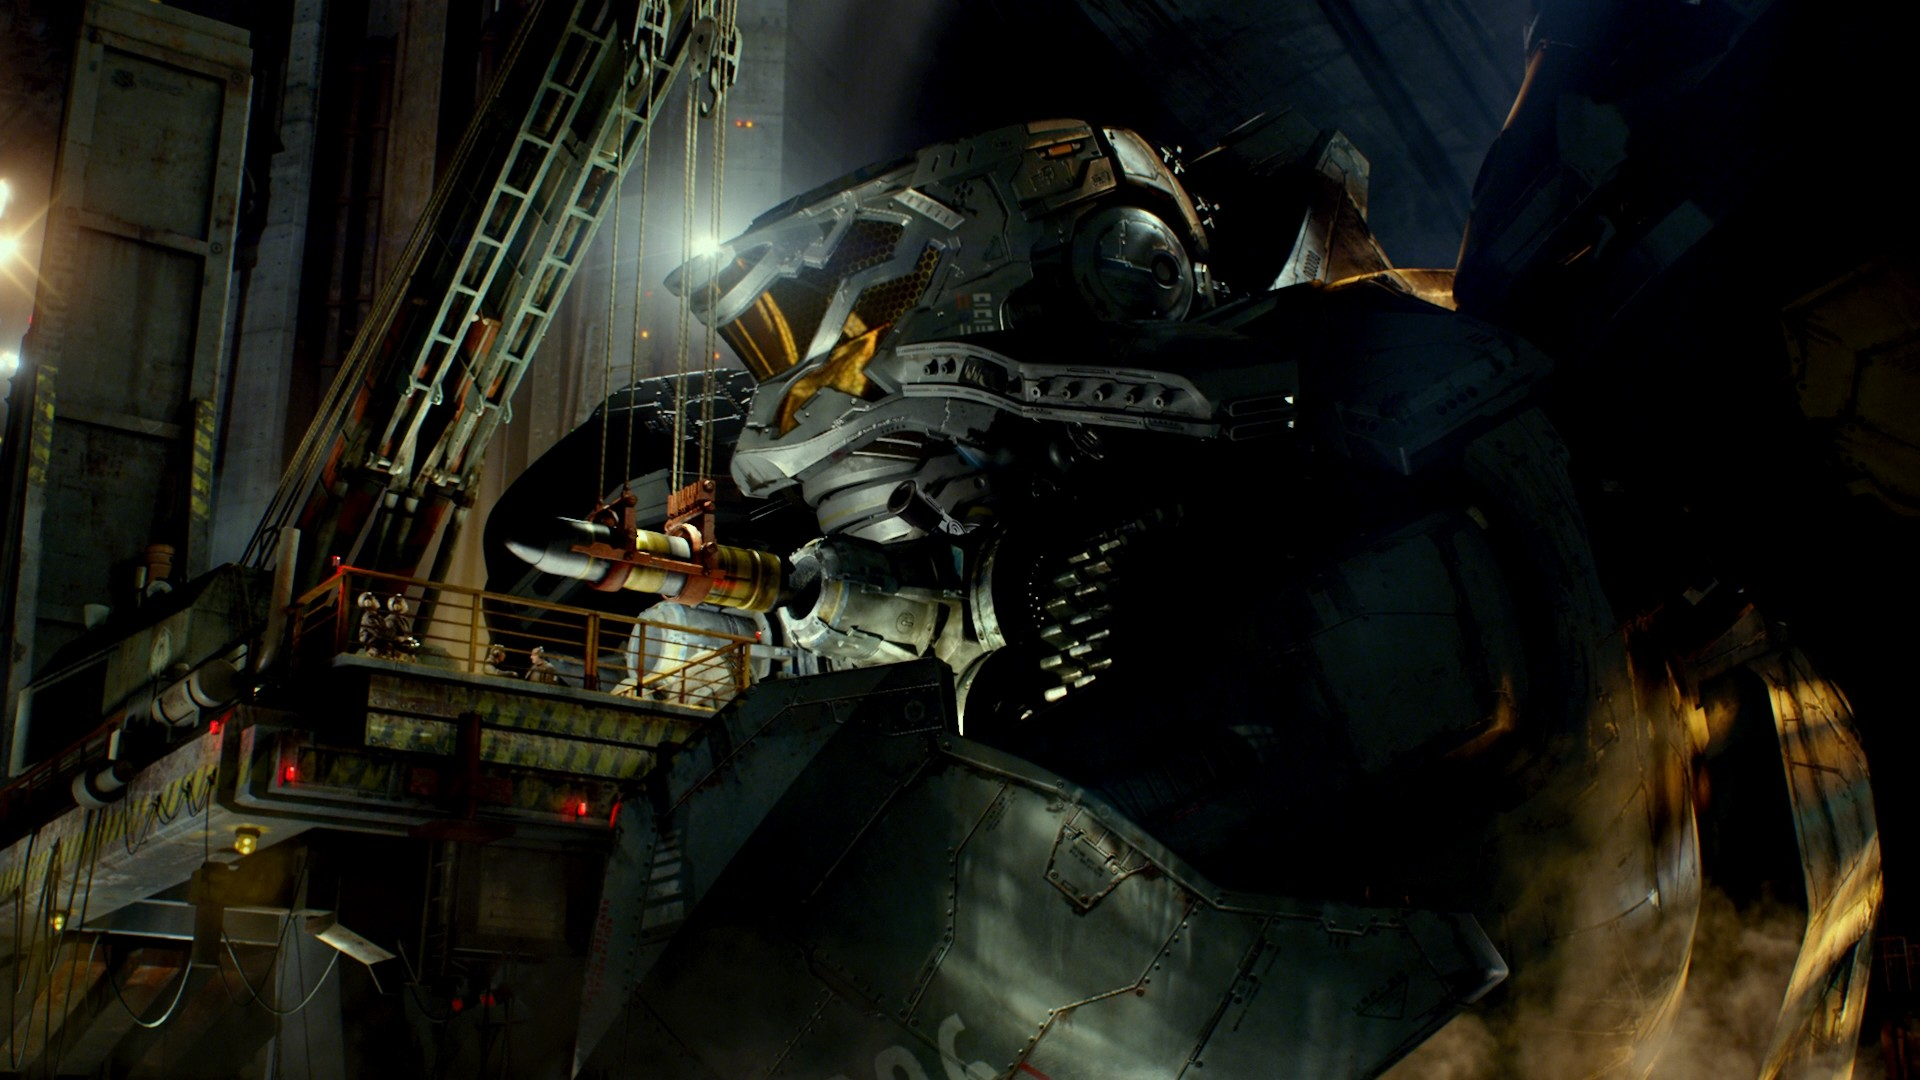 Striker Eureka (vs The World): 1.0 You Are (Not) Alone ... Pacific Rim Cherno Alpha Destroyed